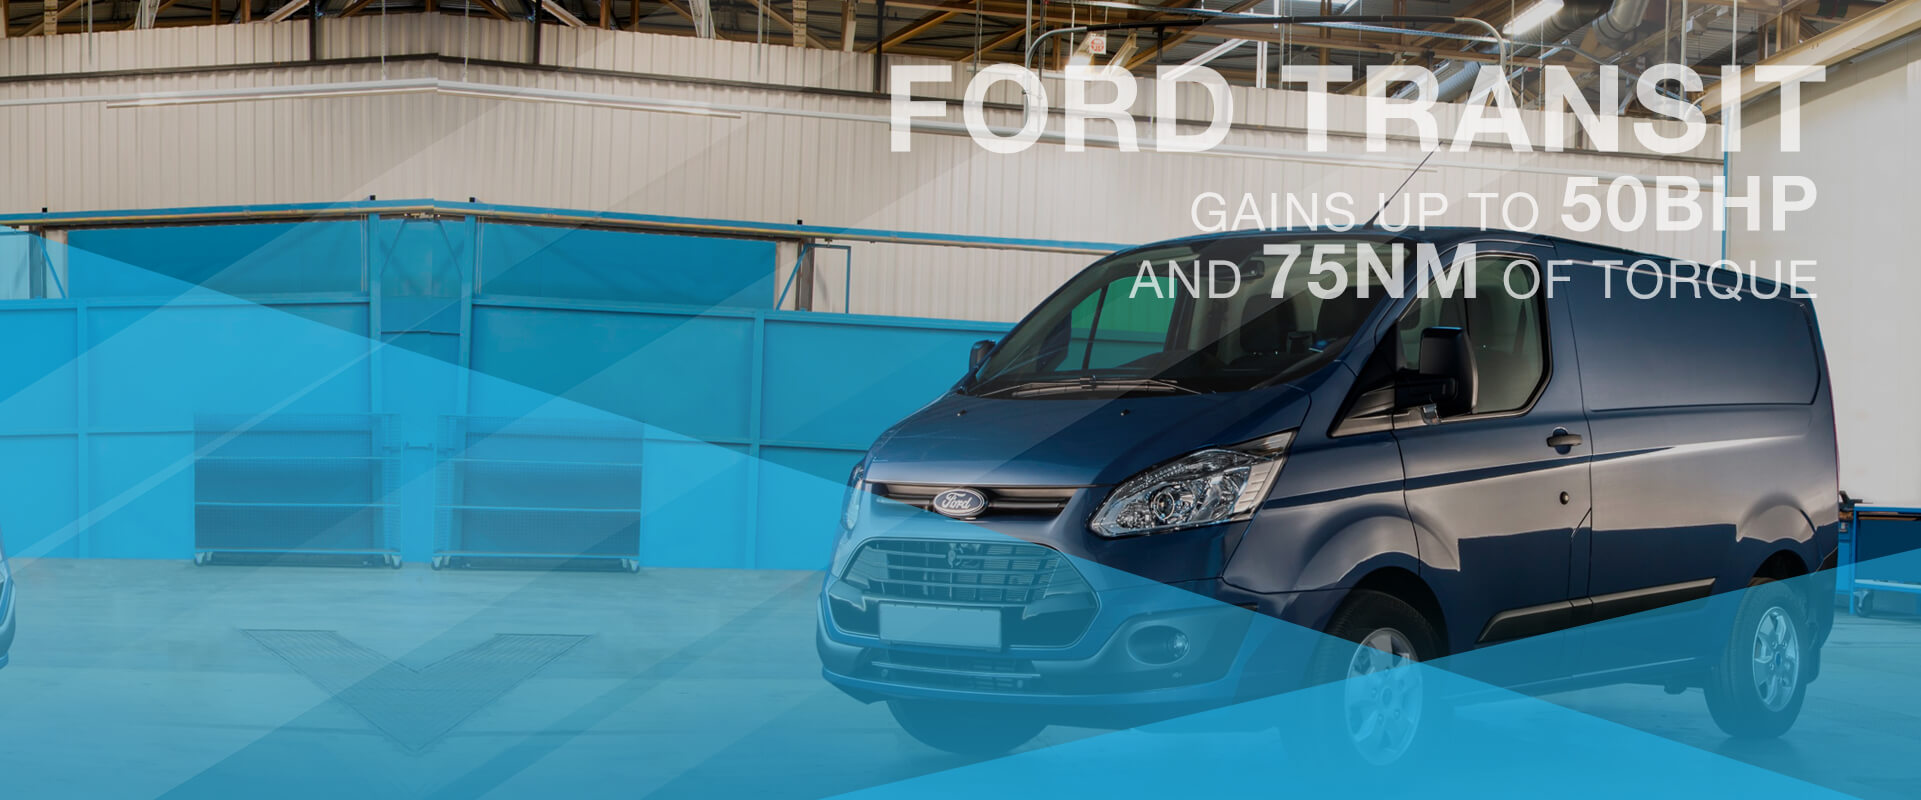 Ford Transit gains up to 50BHP and 75NM of torque